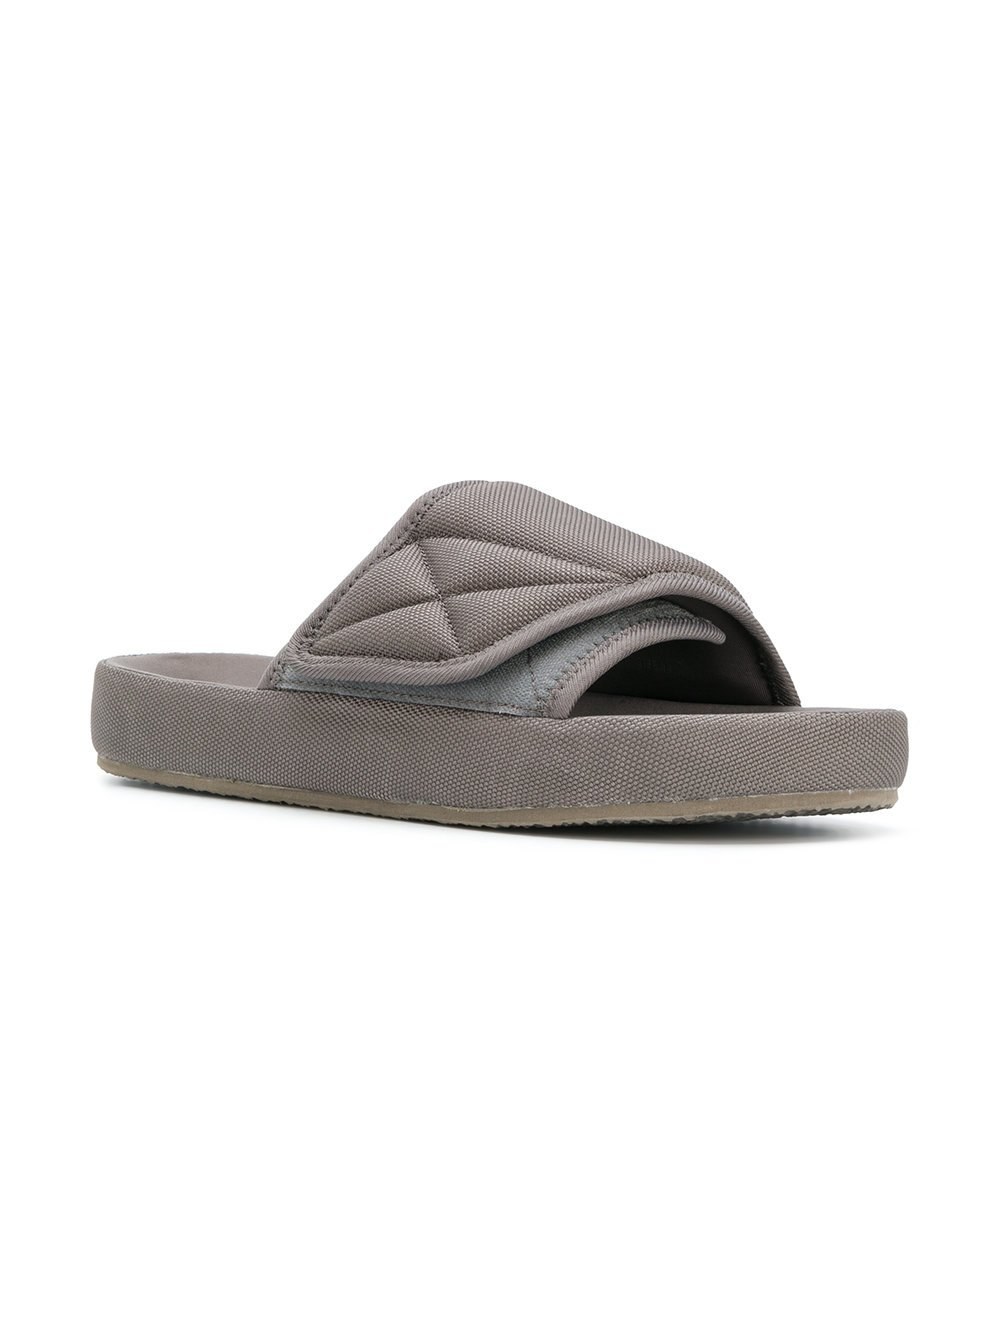 929cb7cf930c7  195.00 USD Graphite Slides   YEEZY Men s slides in taupe from YEEZY Season  6 constructed with